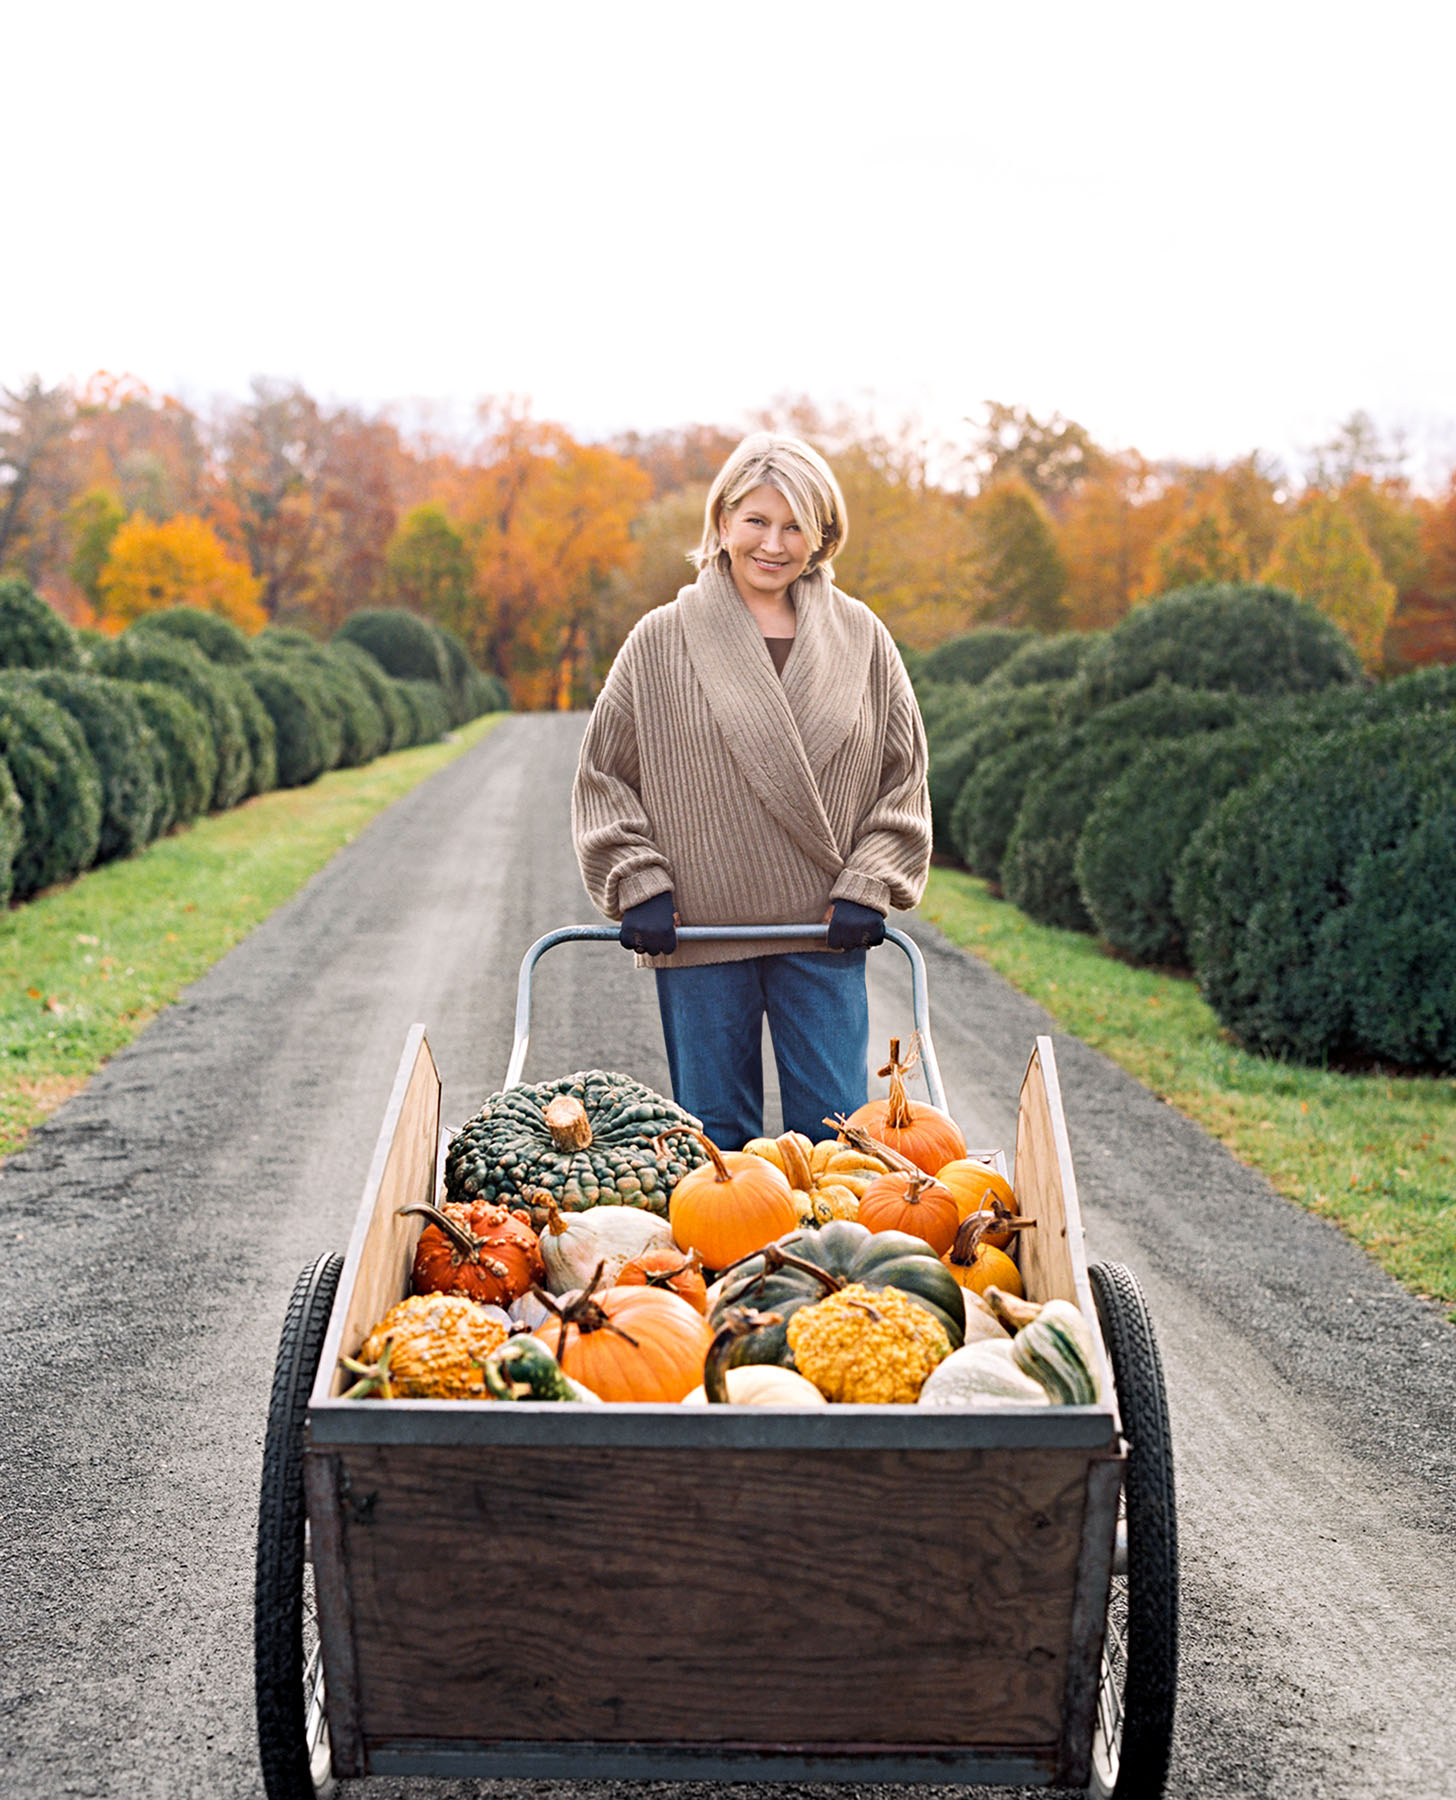 16 of Our Best Fall Harvest Decorating Ideas for Your Home